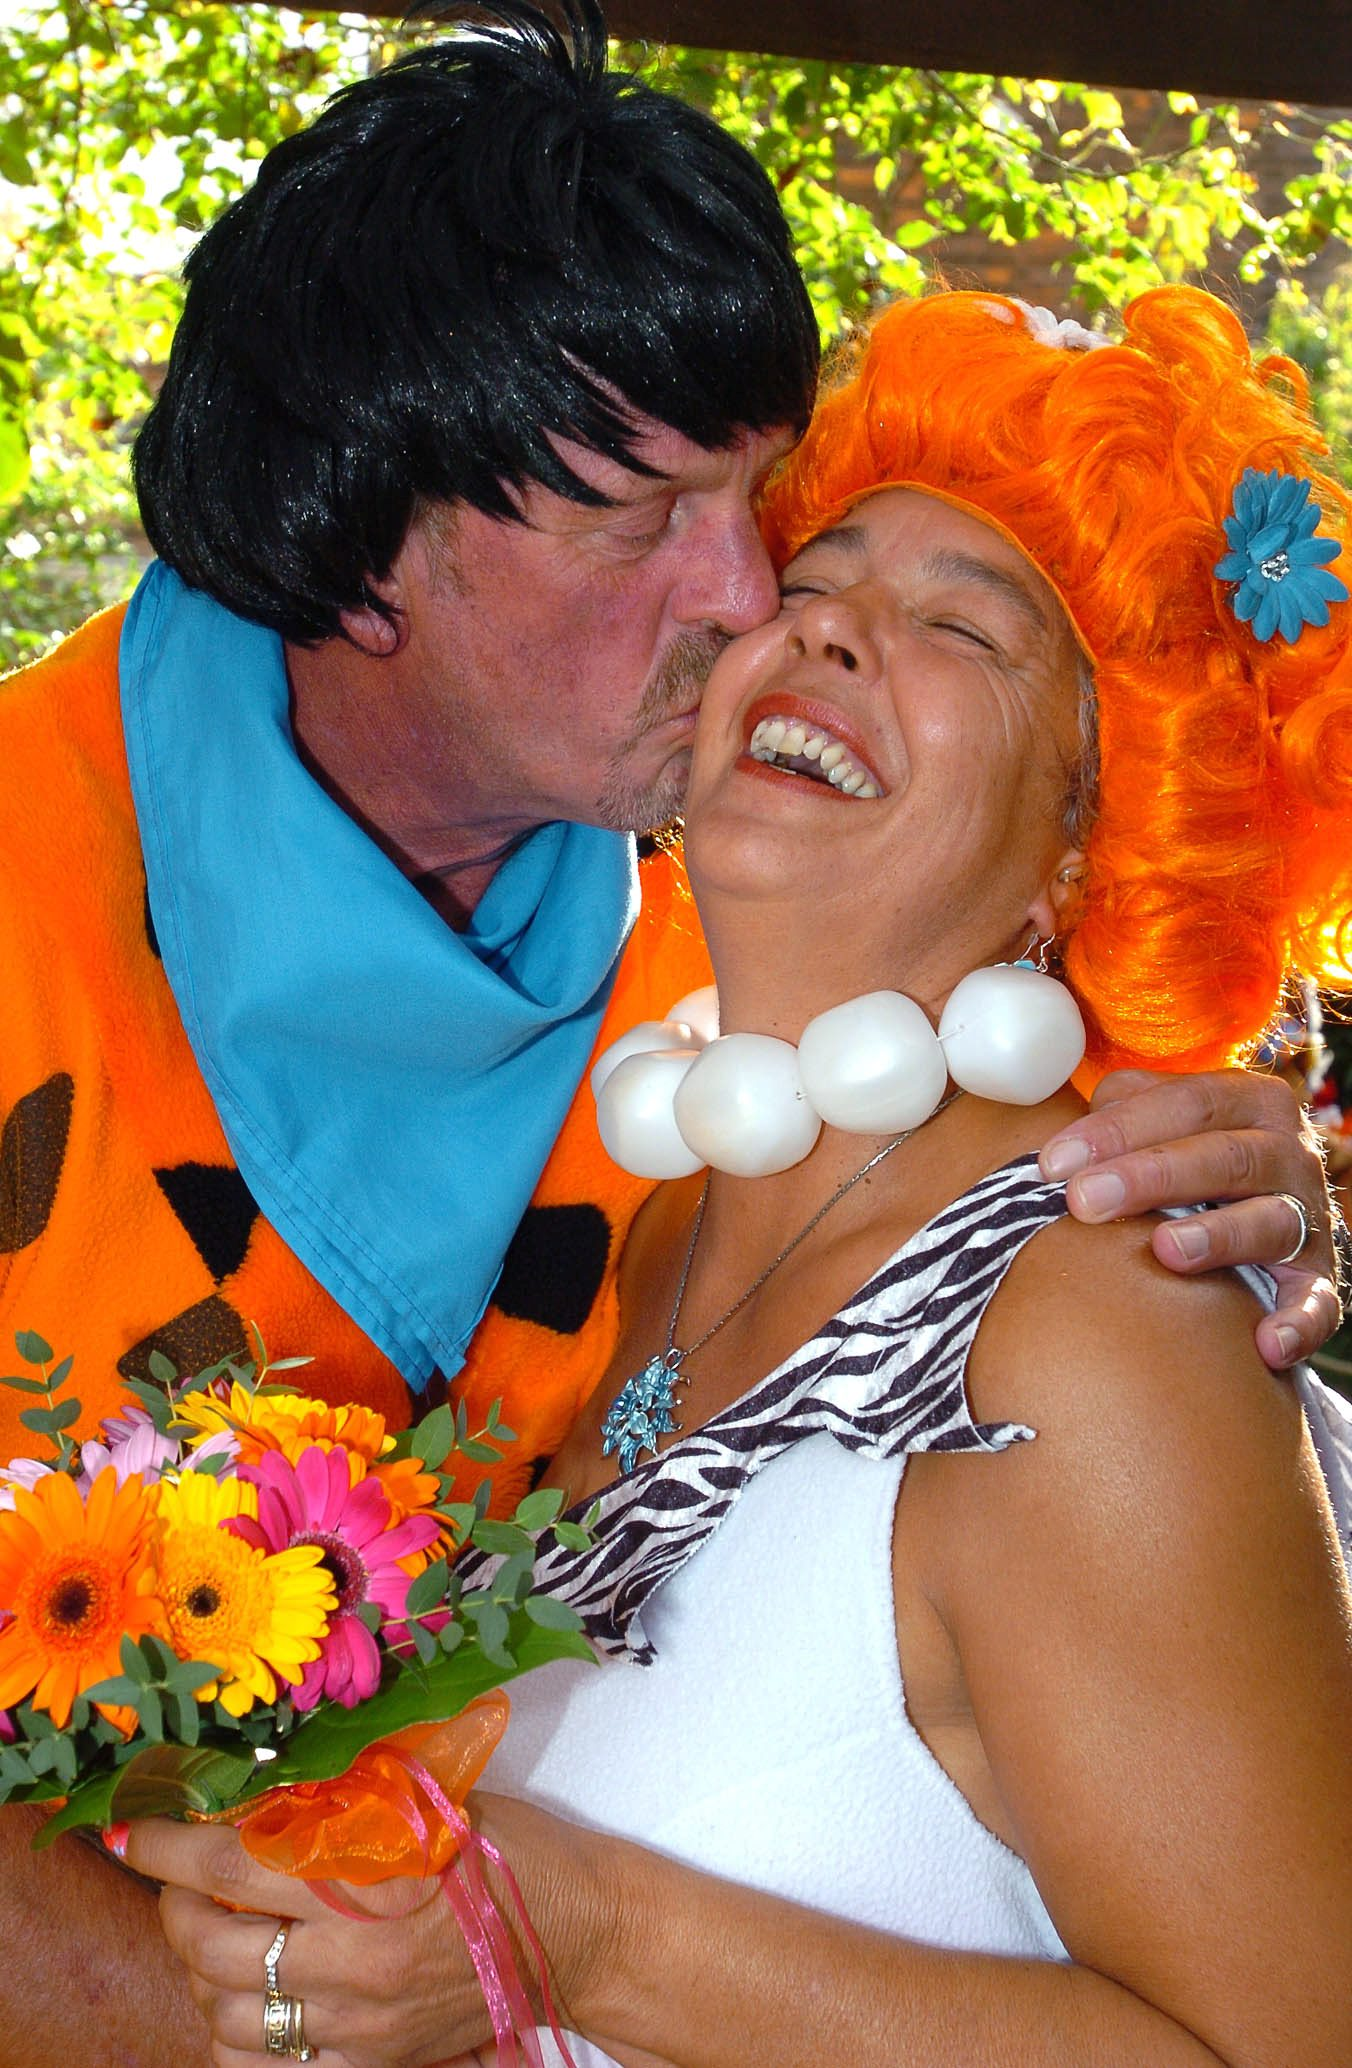 David and Linda Alves as Fred and Wilma on their wedding day